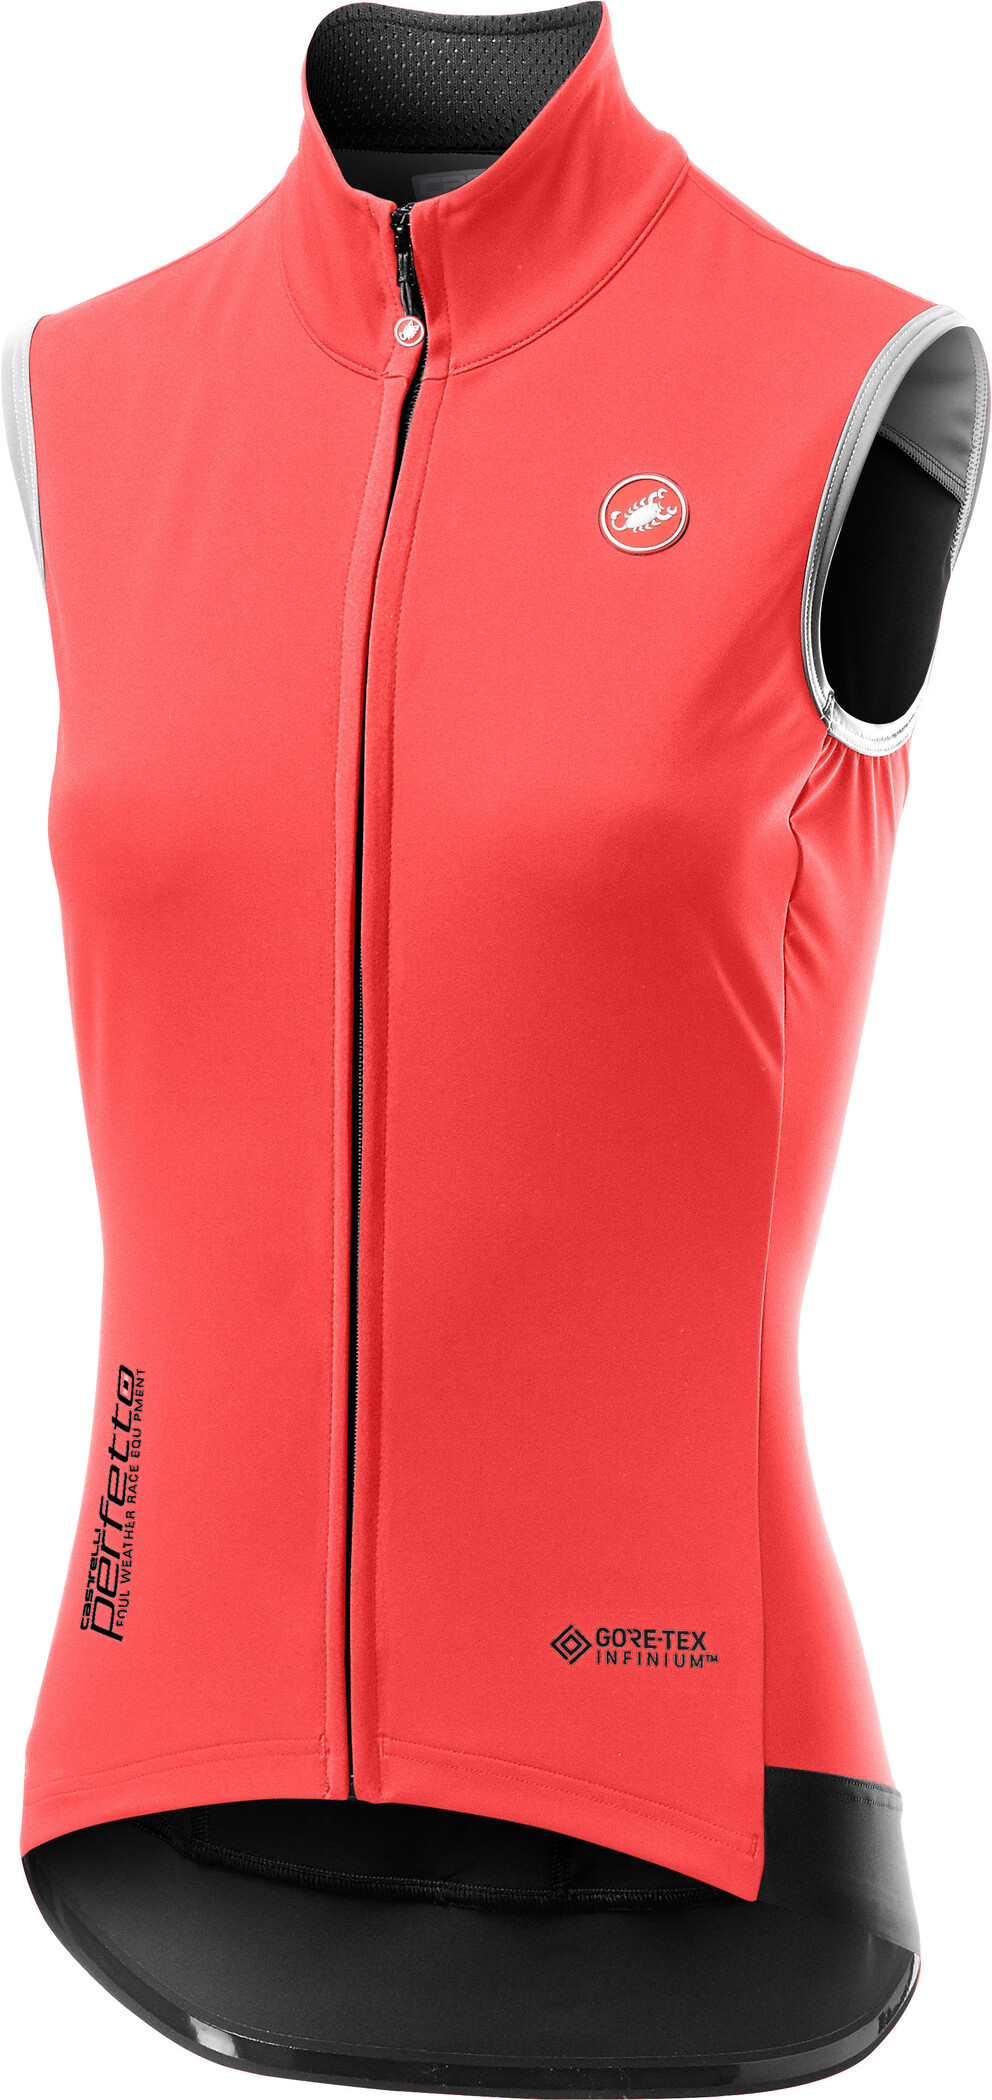 Perfetto RoS Vest Damer, pink | cykelvest